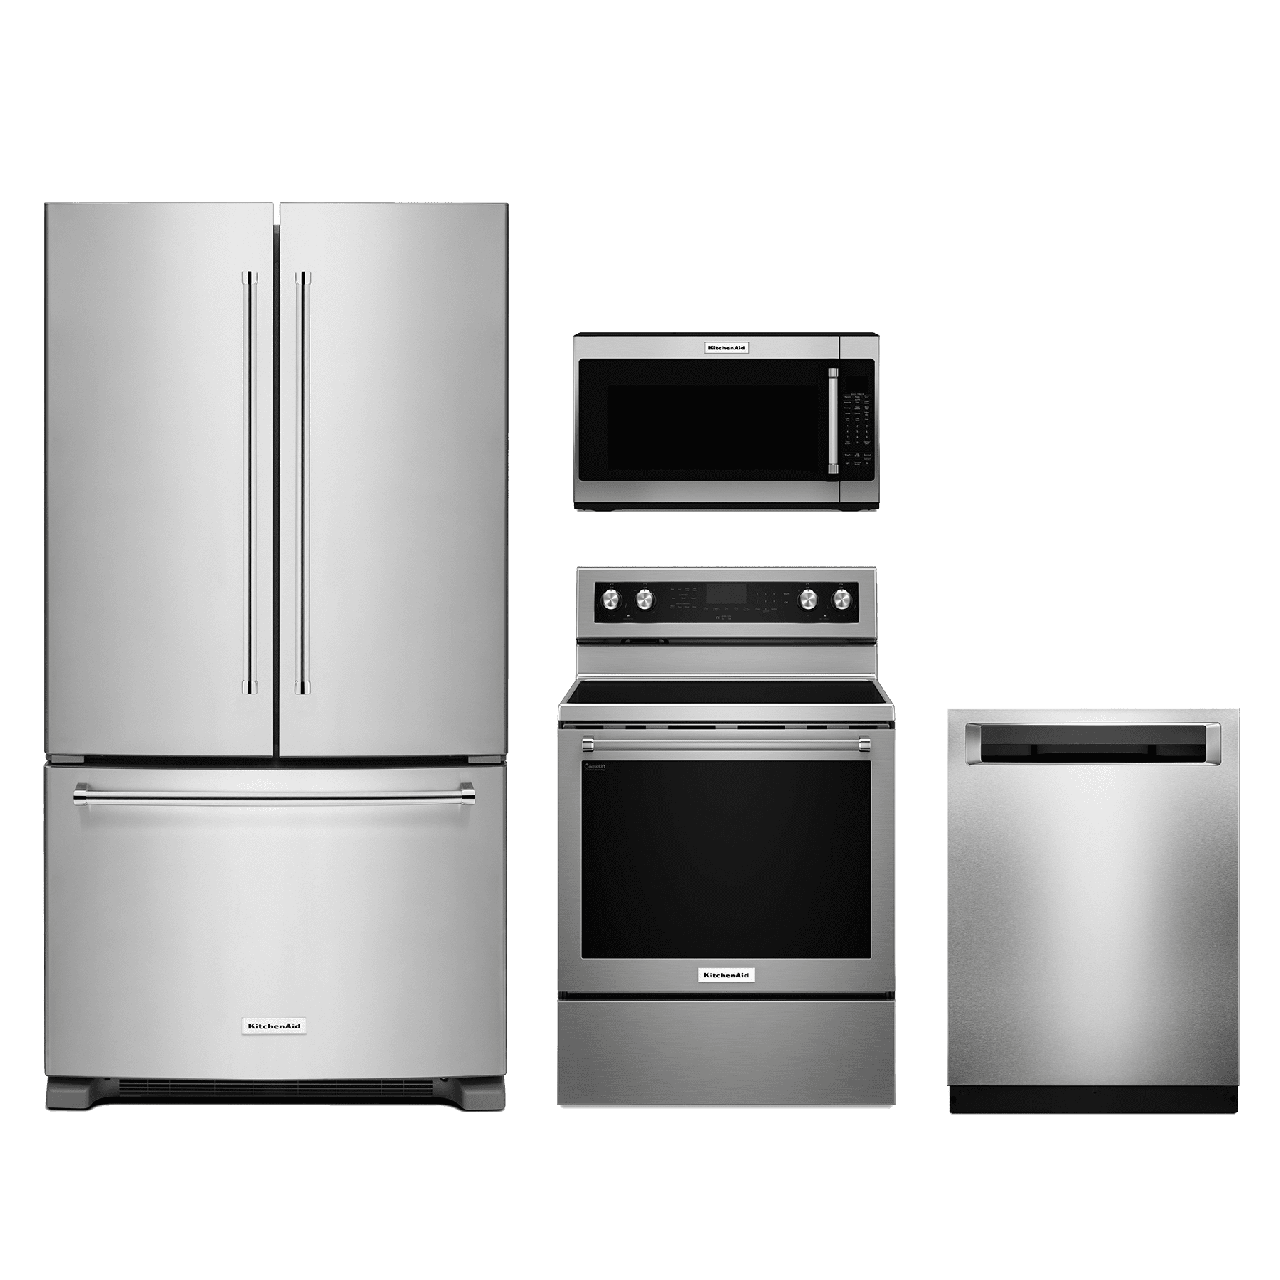 5 Utility Kitchen Tools You Must Buy From The Appliance Stores